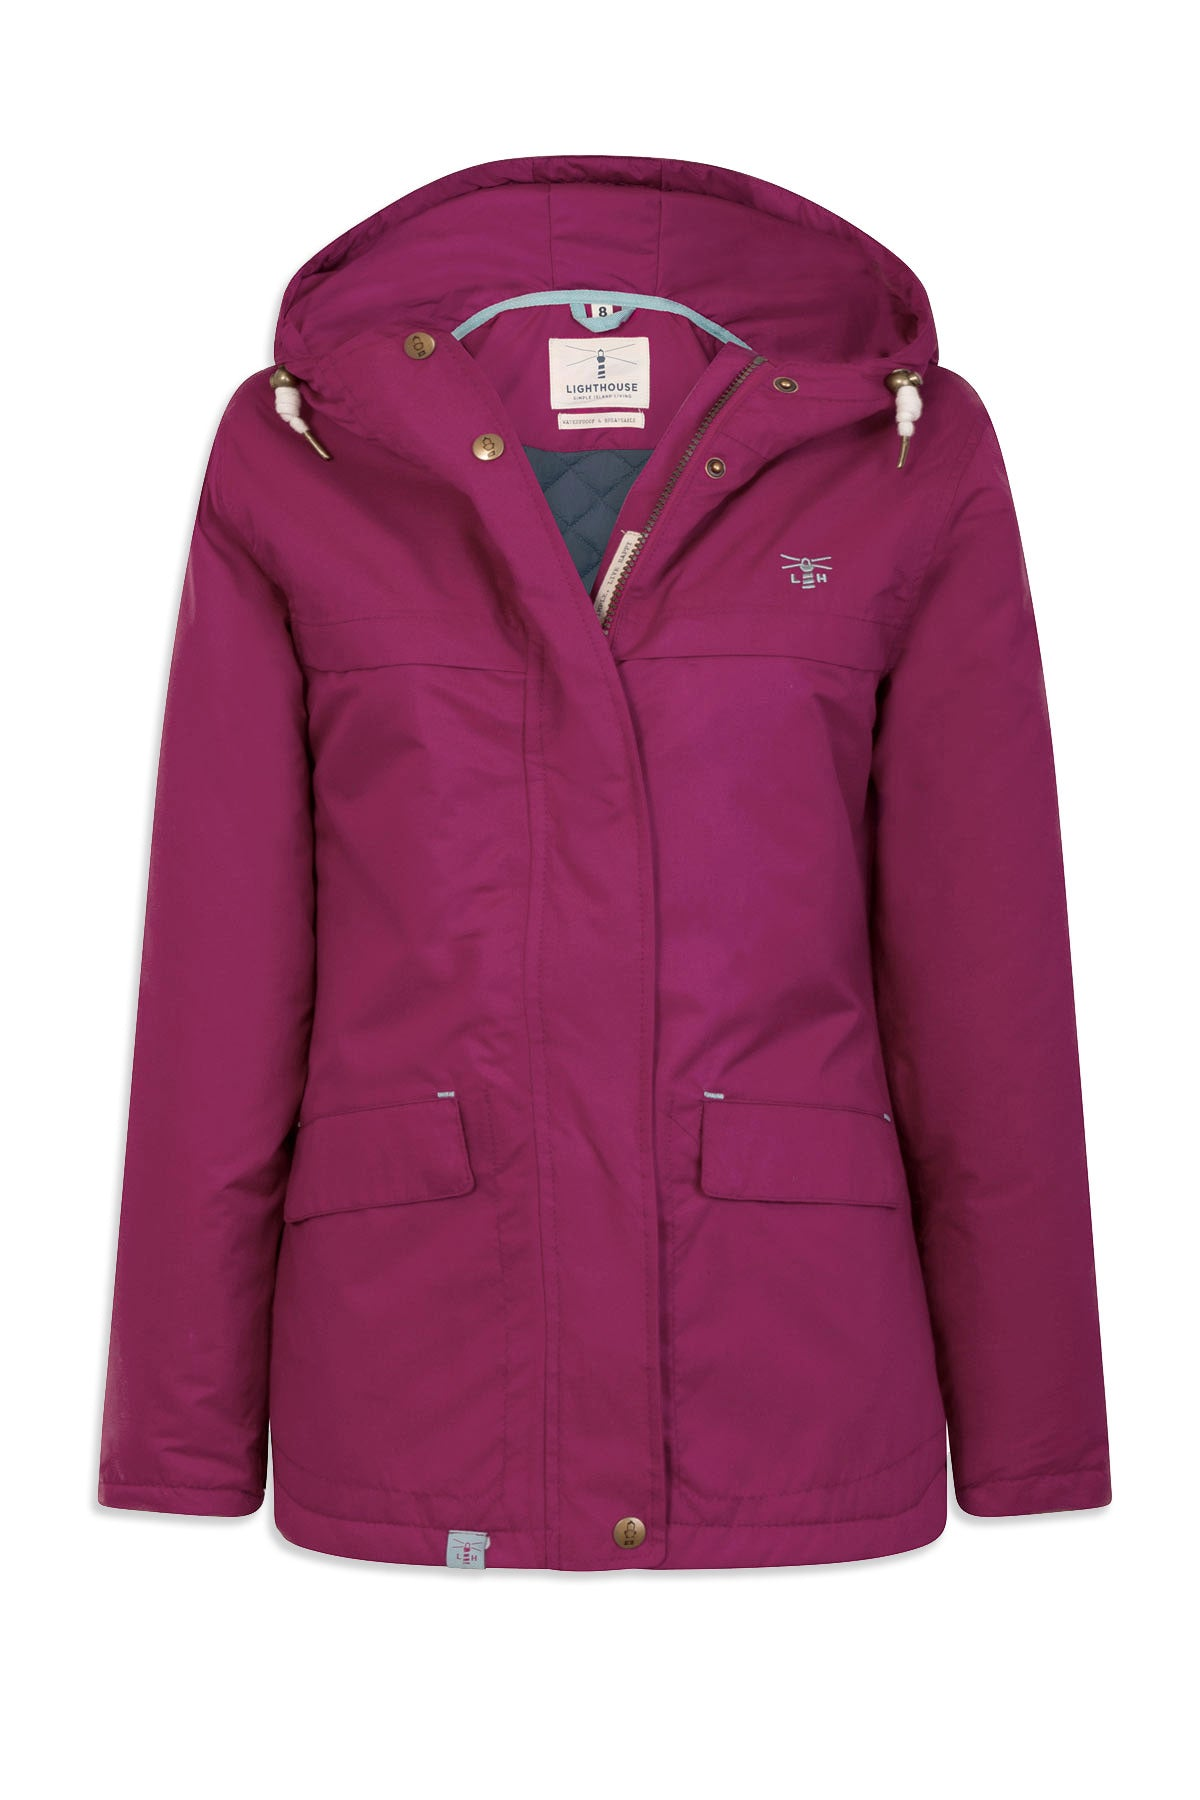 purple berry colour Beaufort Waterproof Jacket by Lighthouse